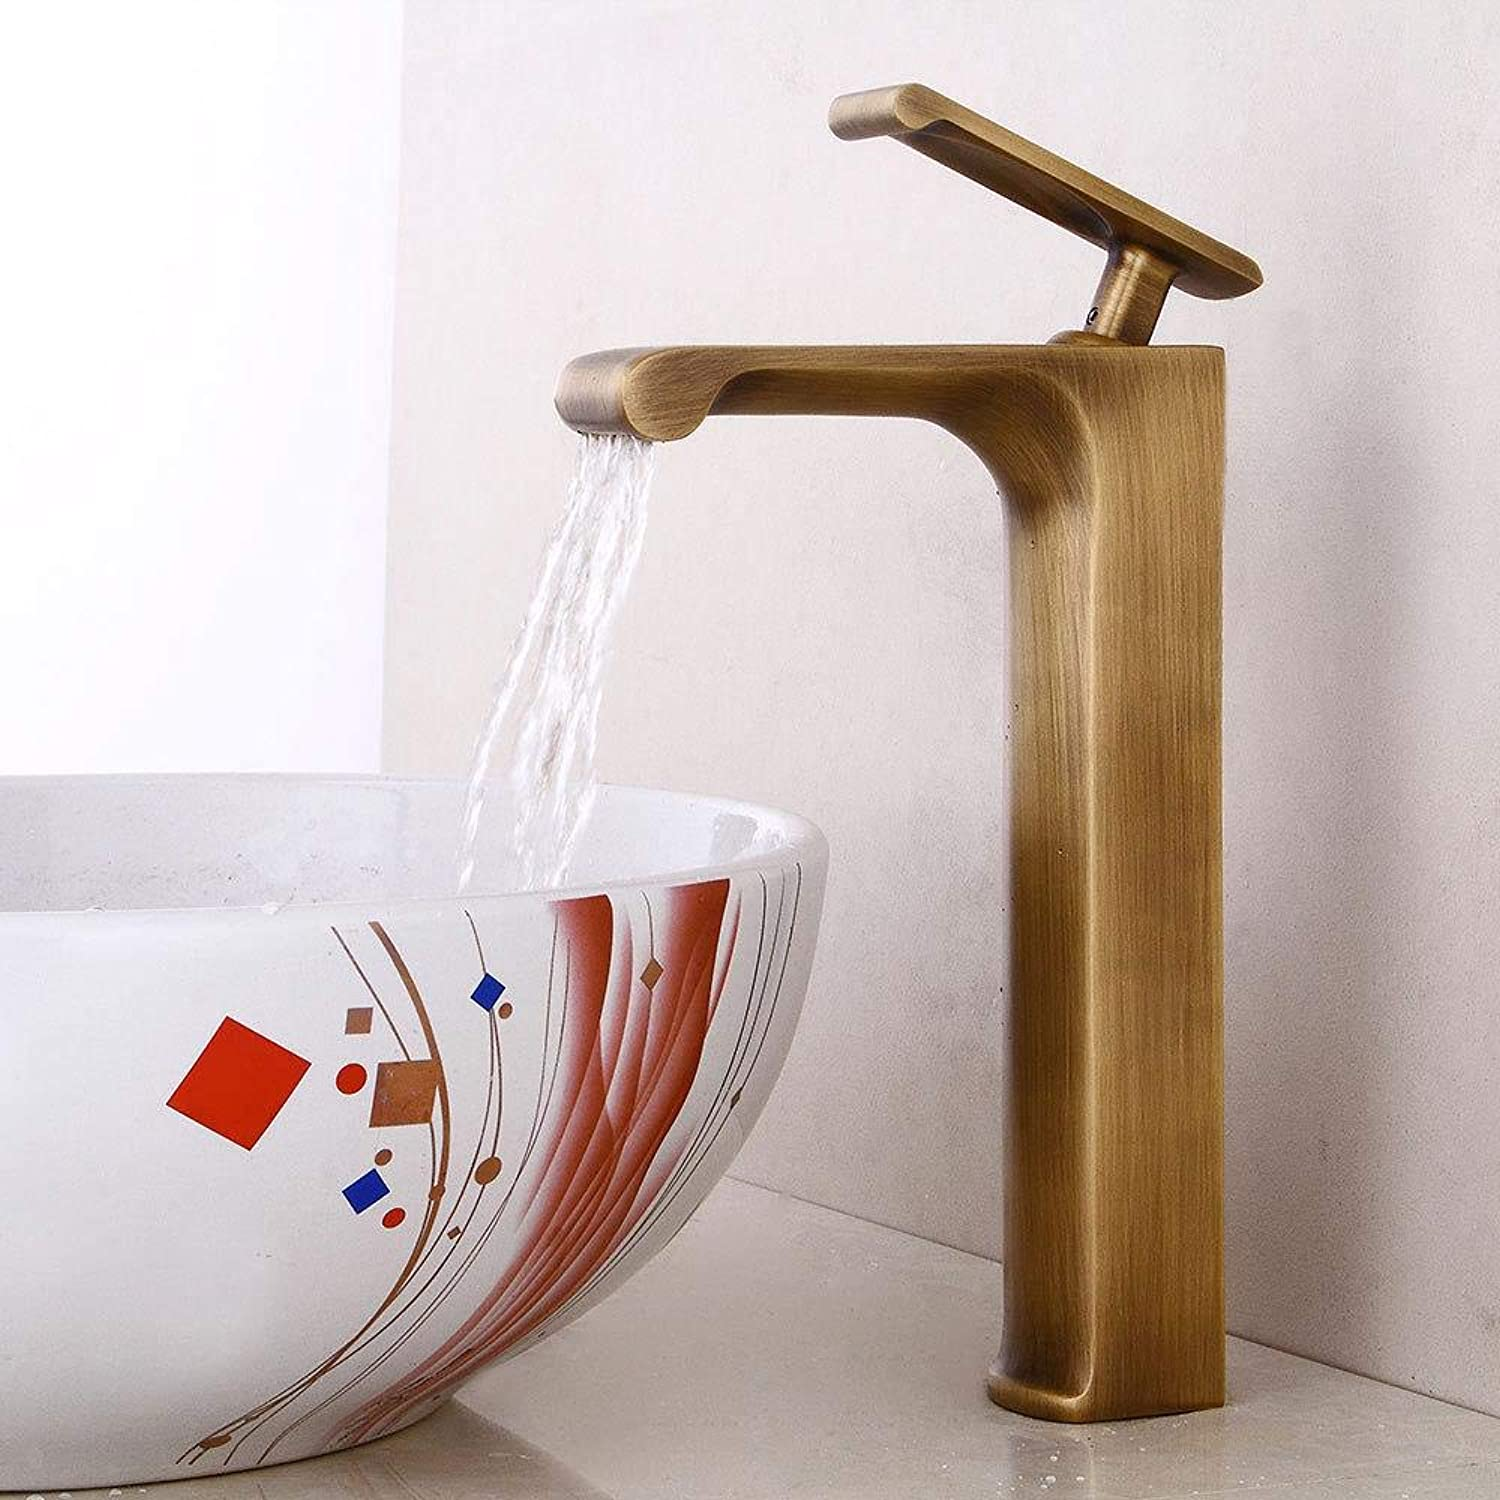 Tap Retro Basin Faucet Antique Bathroom Faucet Waterfall Above Counter Basin Faucet Hot and Cold Basin Faucet